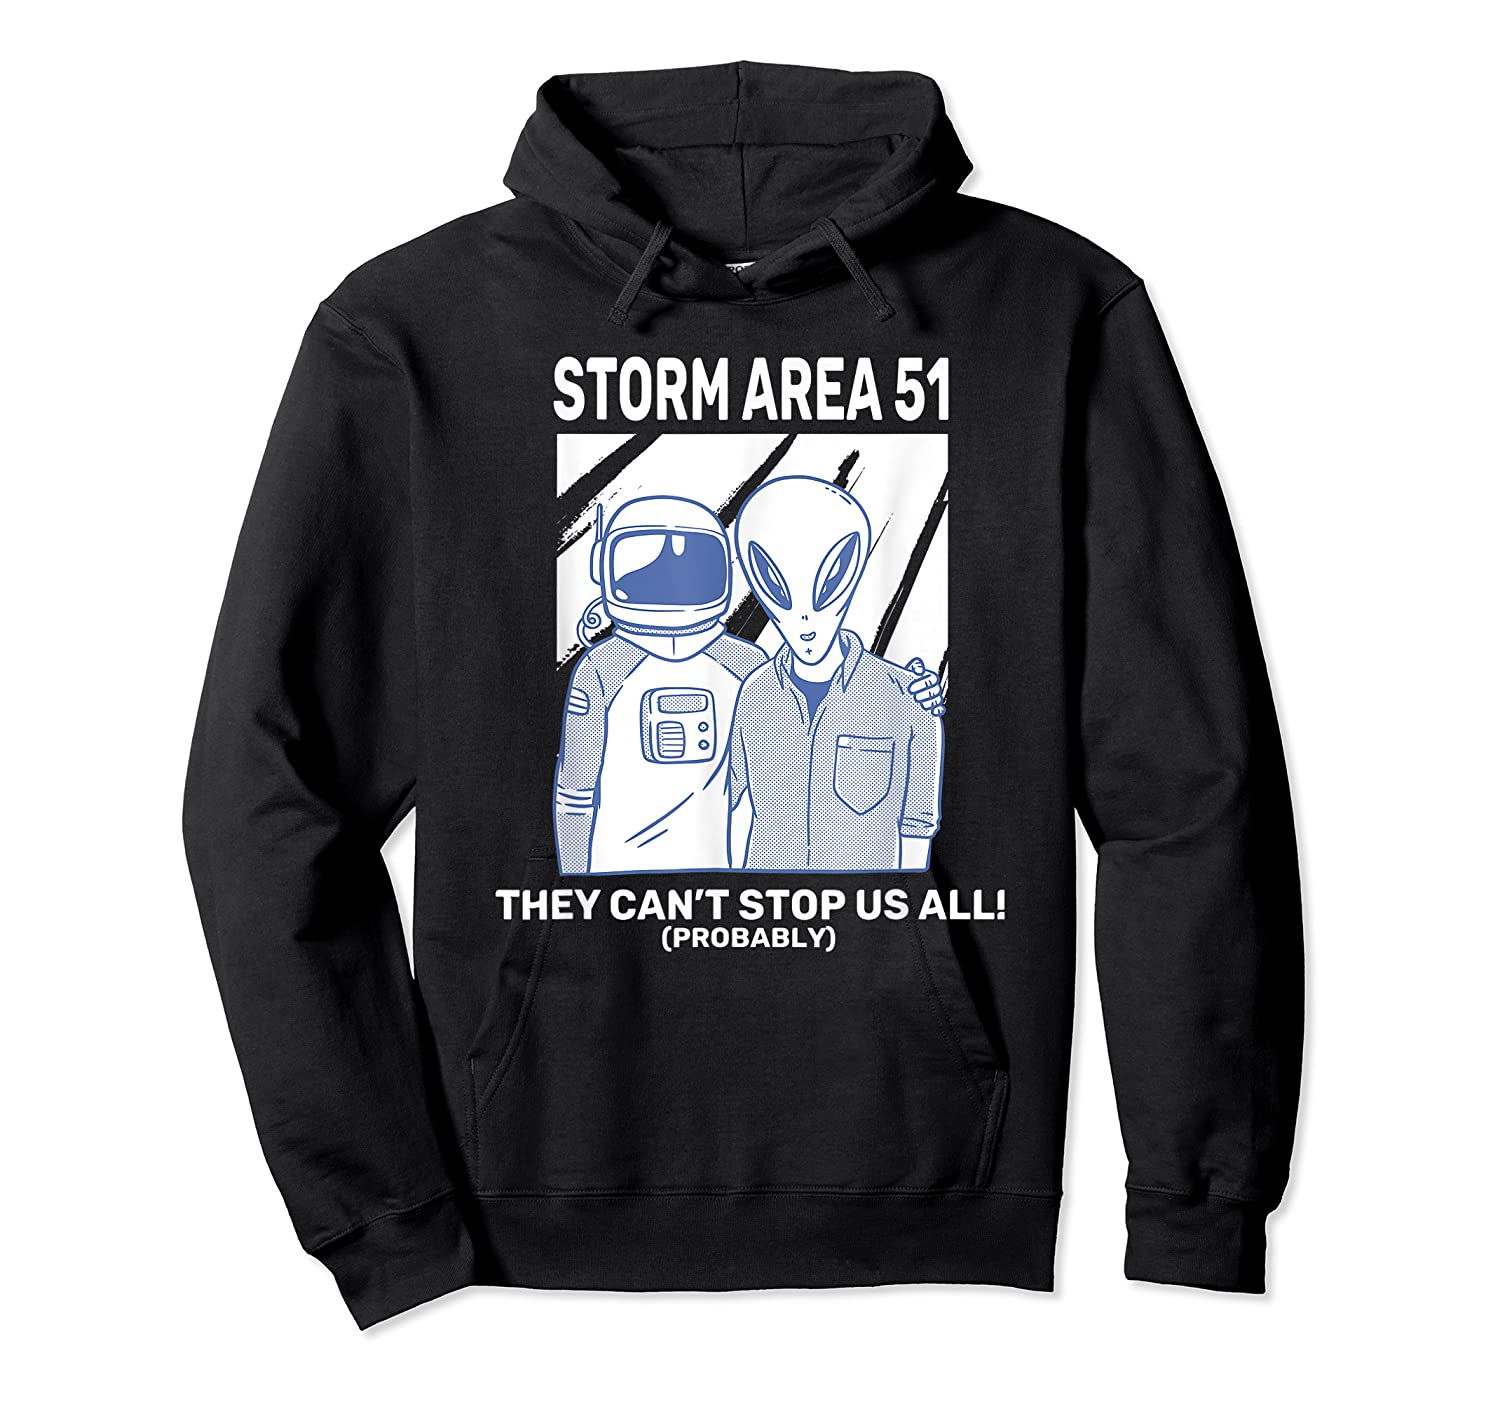 Storm Area 51 They Can't Stop Us All Shirts Unisex Pullover Hoodie